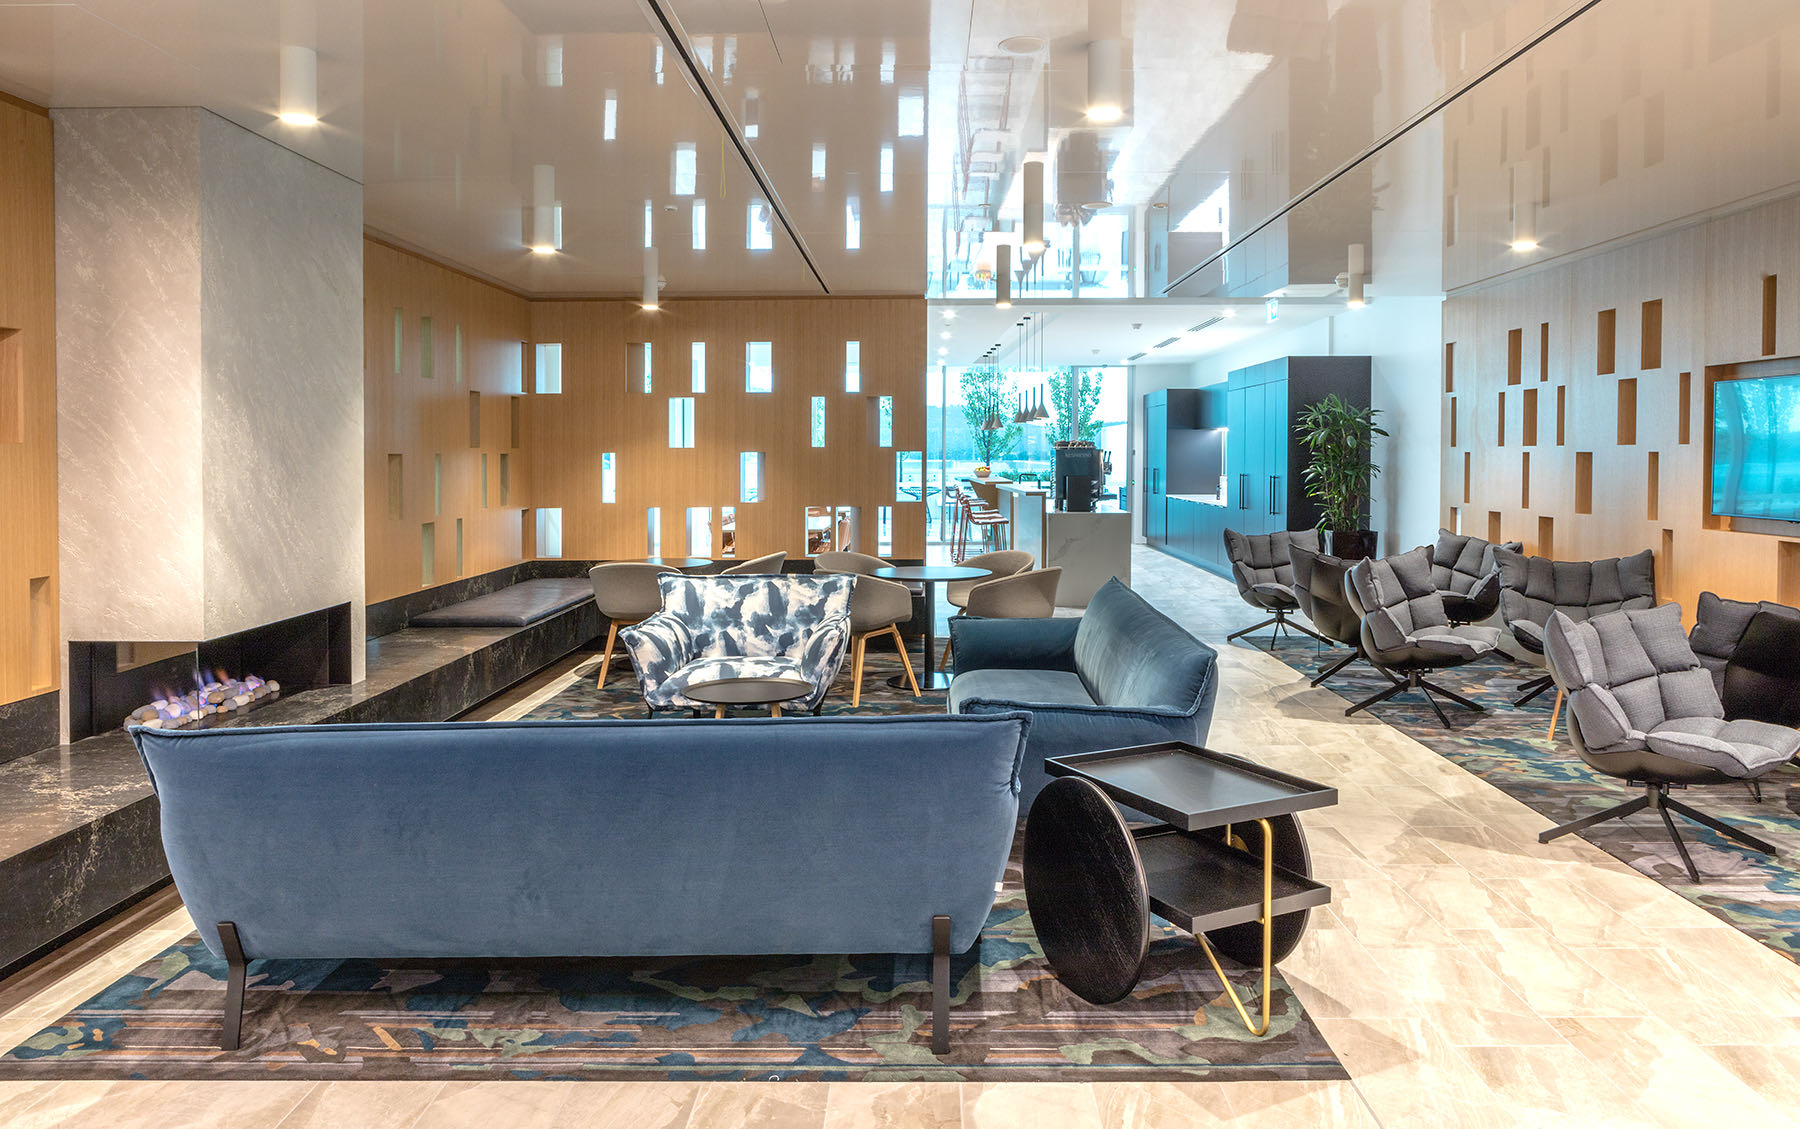 A Look Inside Airport Capital Group's New Canberra Office